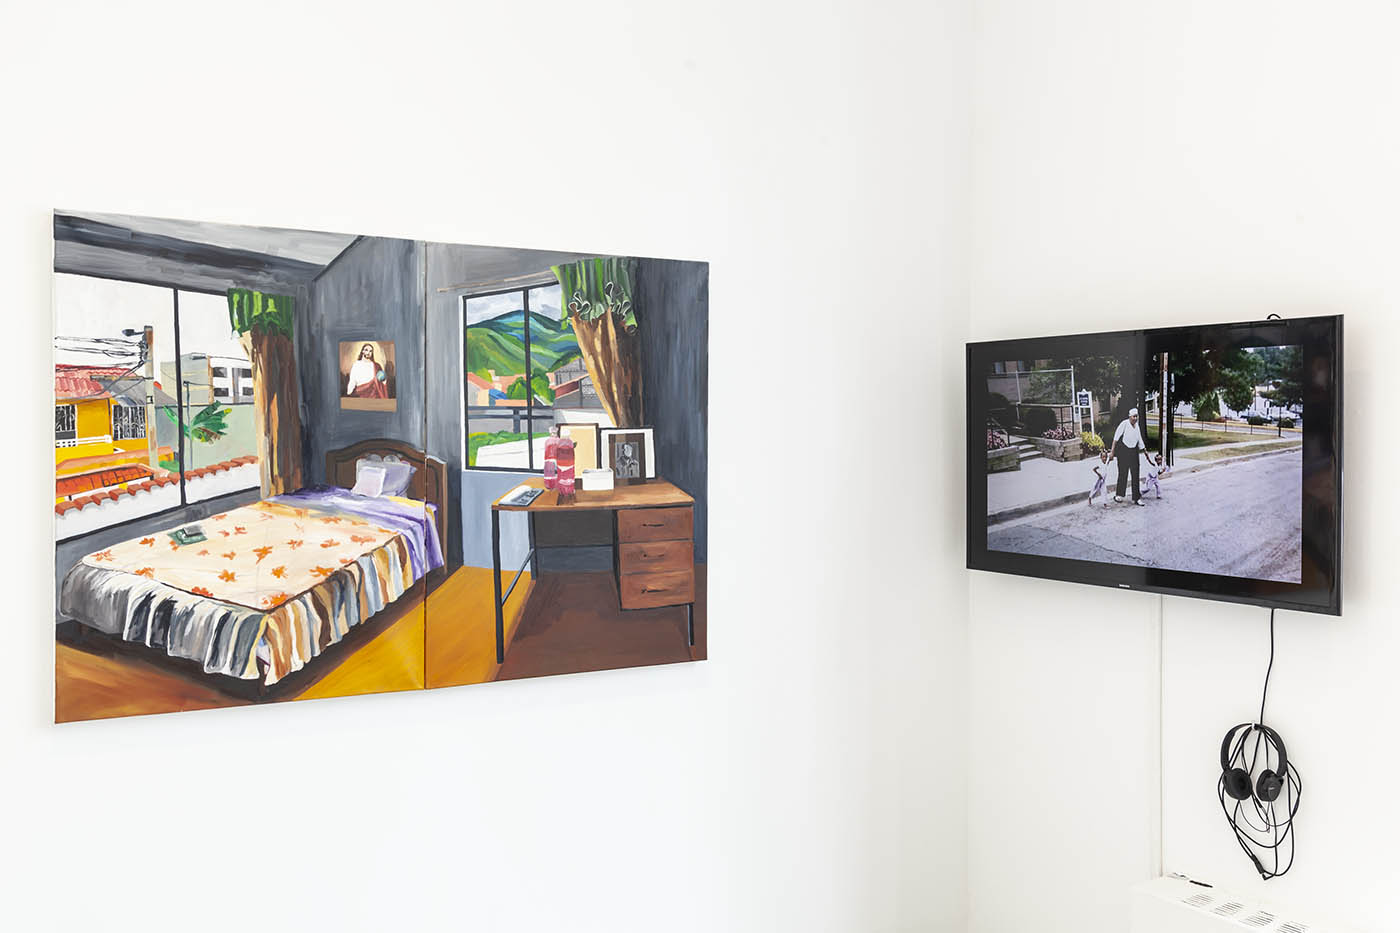 Exhibition view: Painting of bedroom, and a video monitor of a man crossing a suburban street.